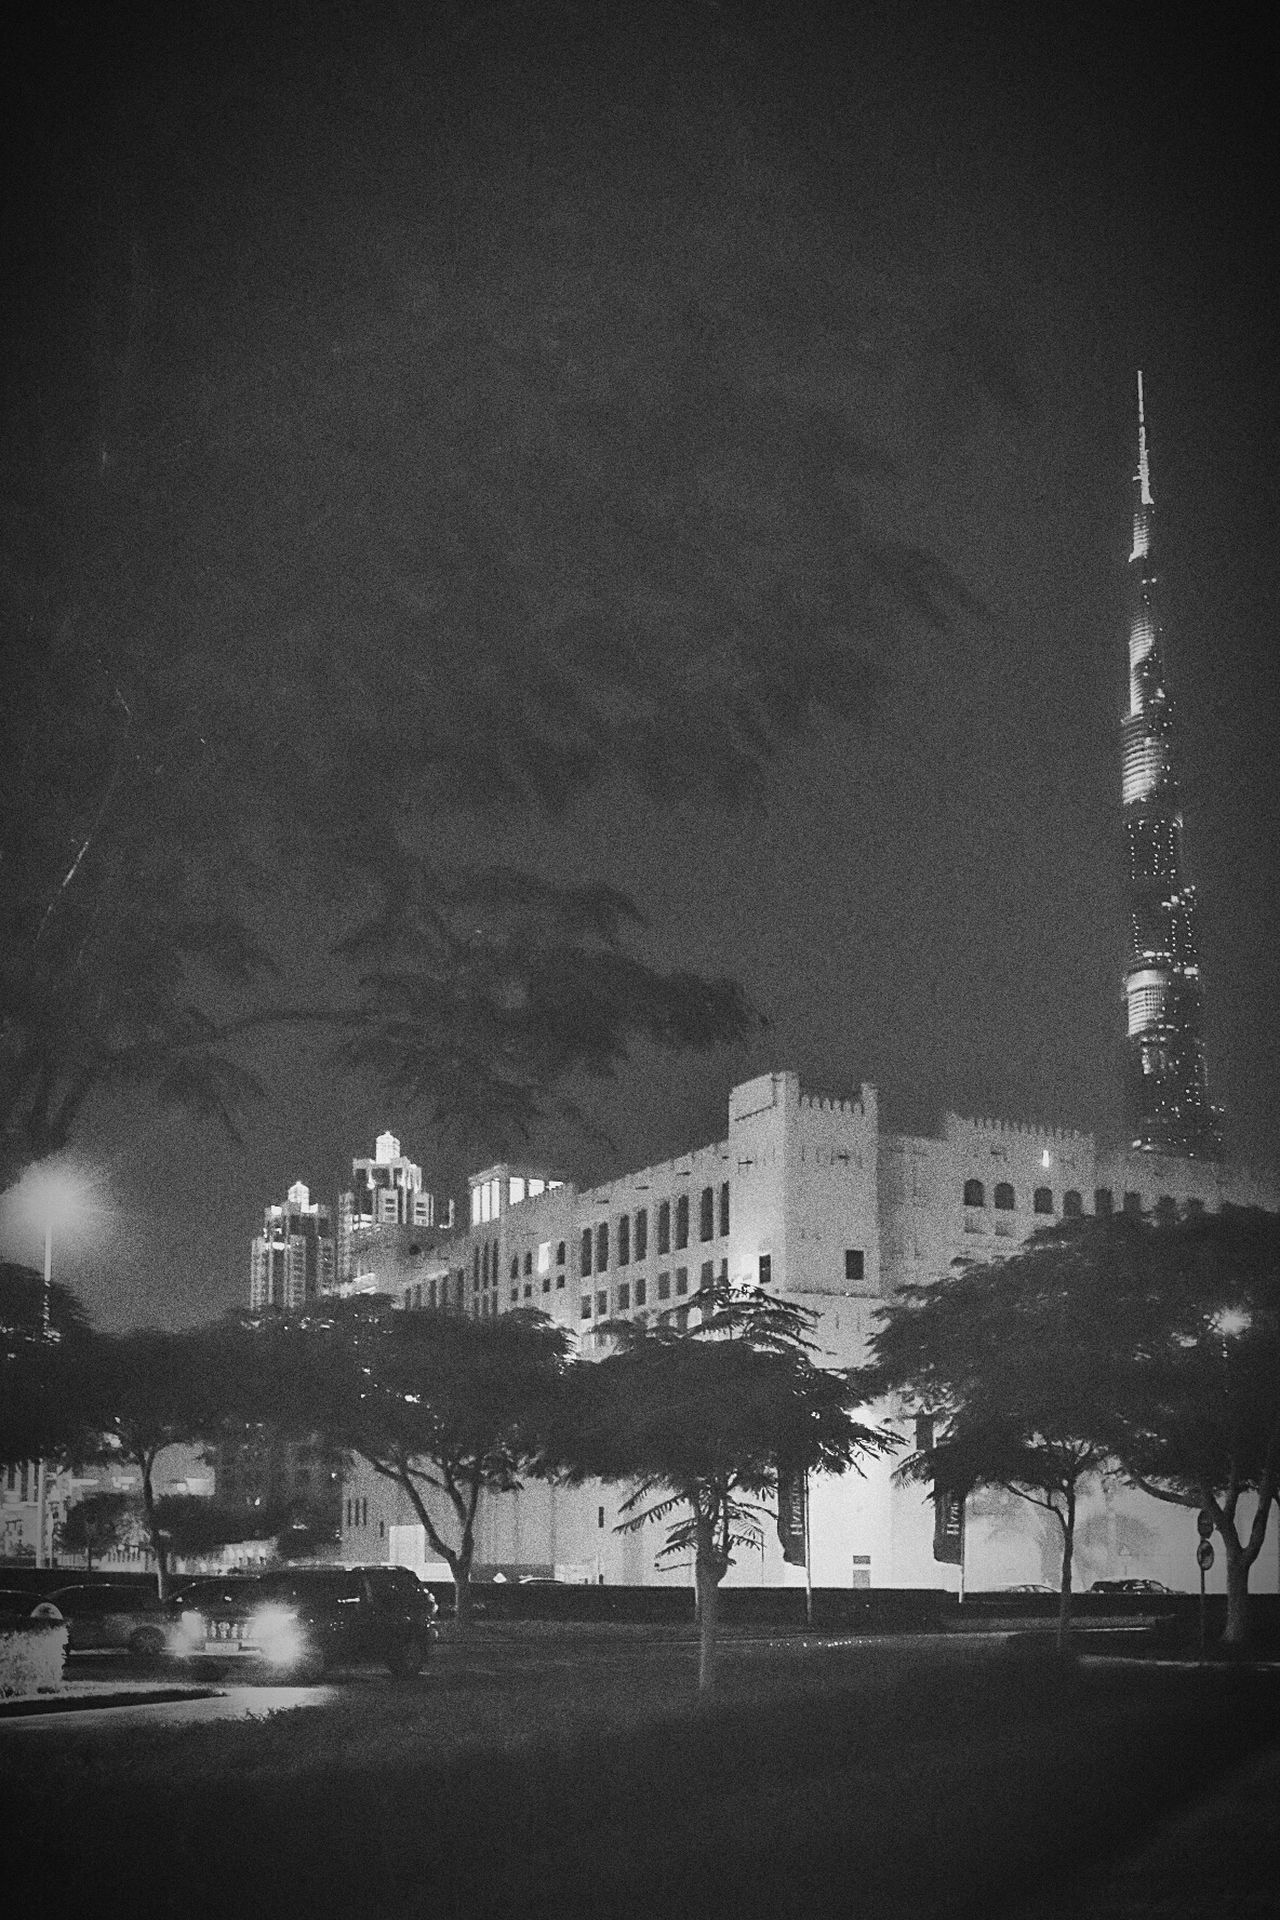 Modern noir Night No People Architecture Outdoors Black And White Street Photography City Illuminated Dubai Urban Black & White Transportation Burj Khalifa Car Vehicle Film Noir No People